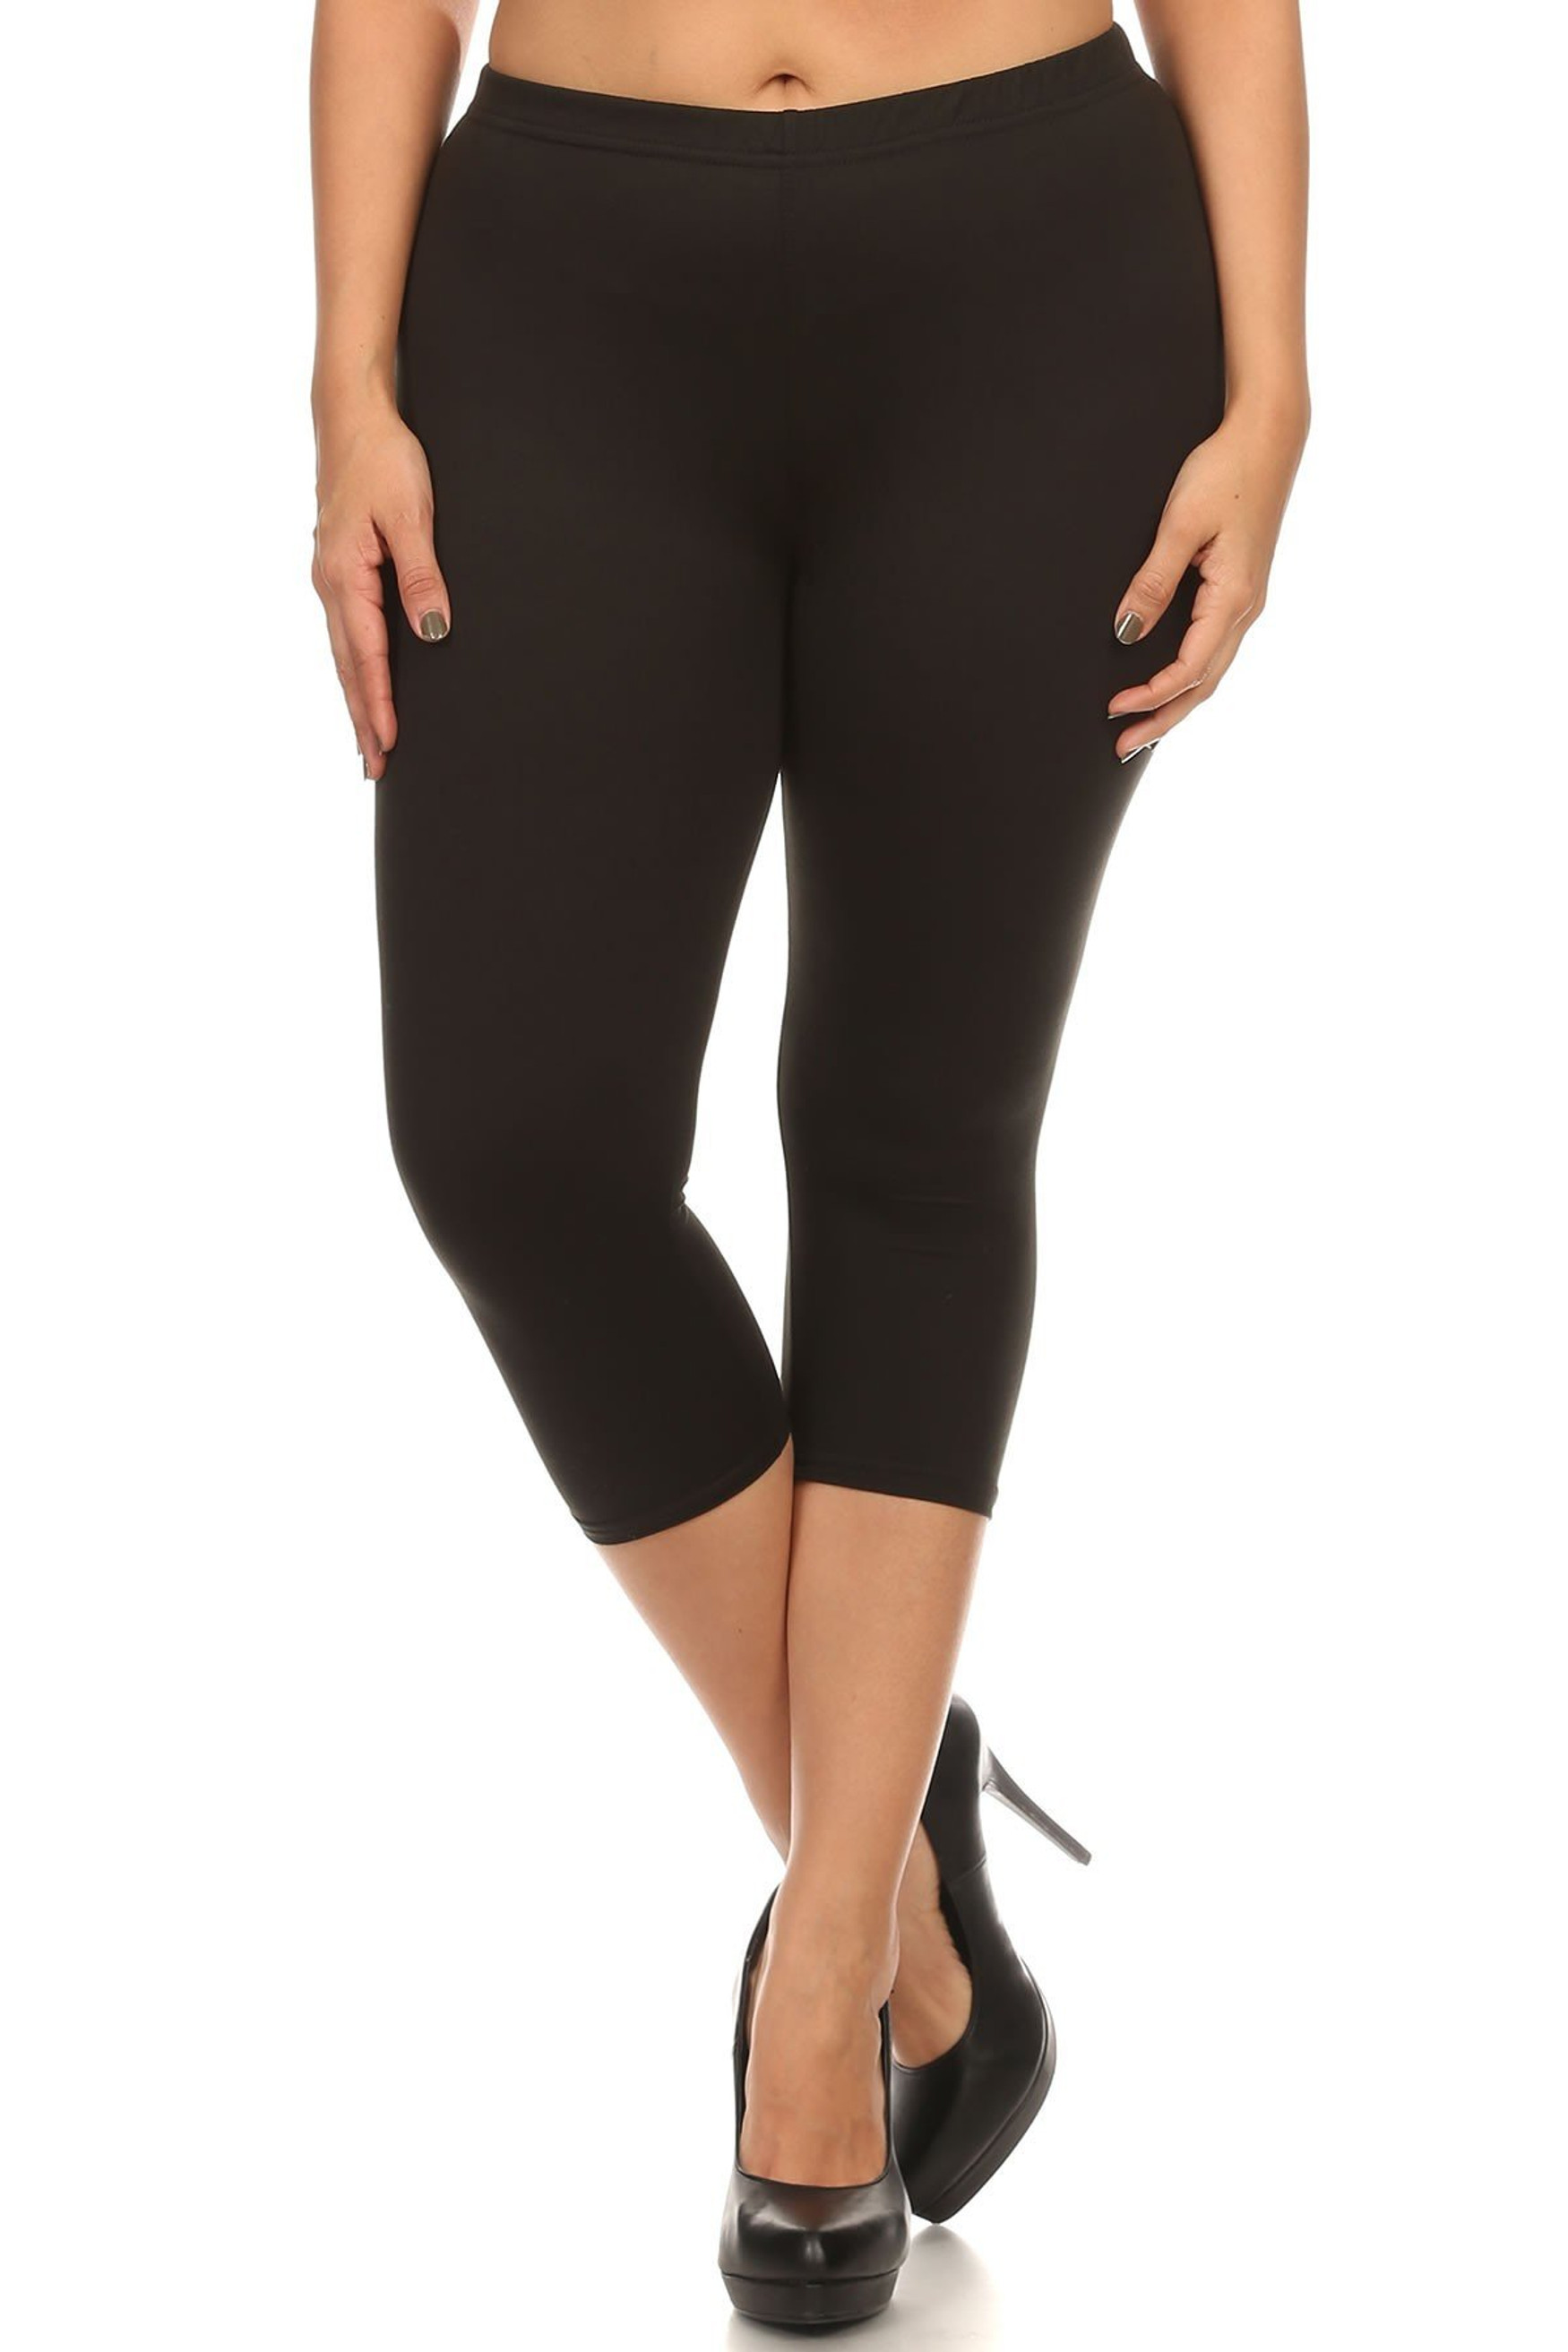 Front side image of Black Buttery Soft Solid Basic Extra Plus Size Capris - 3X-5X - New Mix